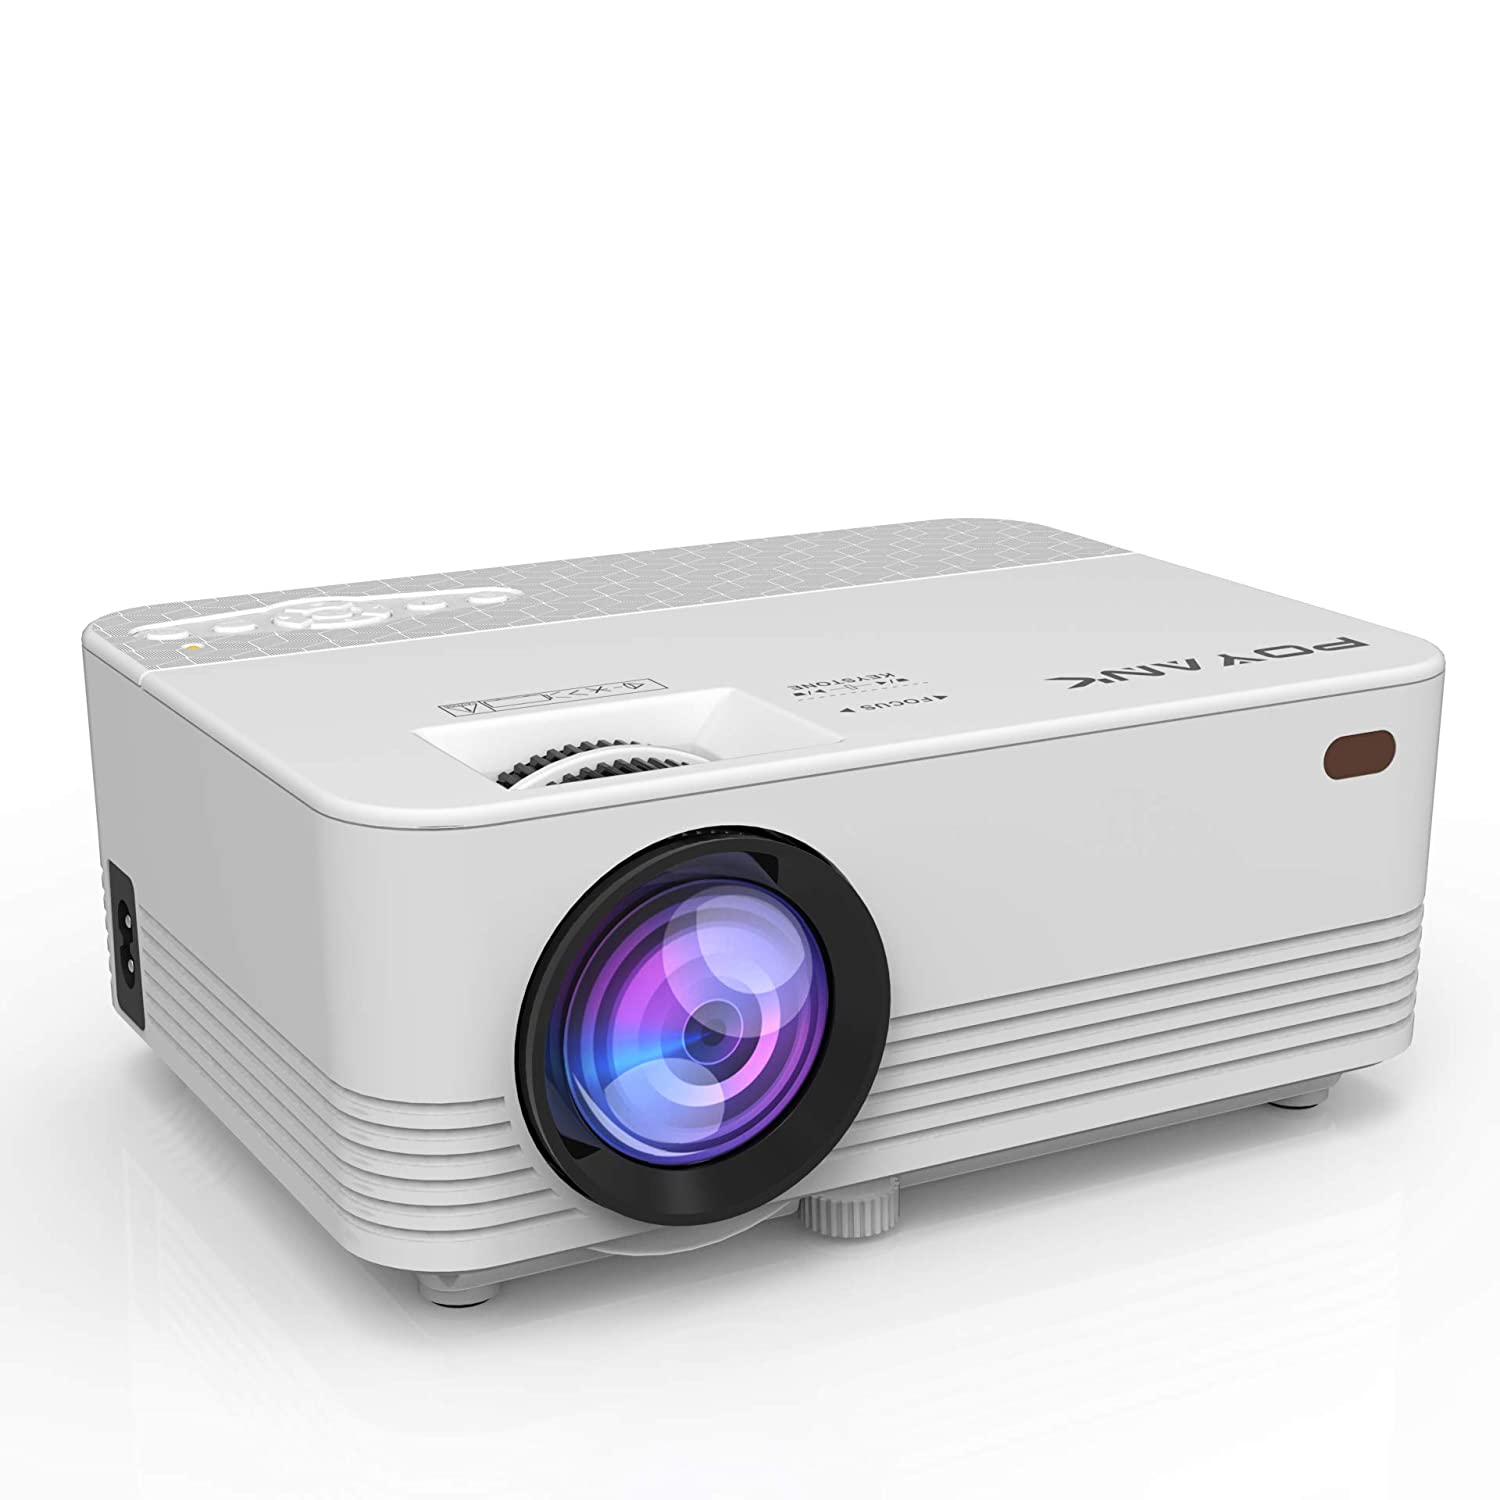 [WiFi Projector] POYANK 2000LUX LED Mini Projector, WiFi Directly Connect with iPhone X,8,7,6,5/iPad/Mac/Google/Samsung,Huawei,Xiaomi & Android Device (1080p Supported) (WiFi Model) TP-01